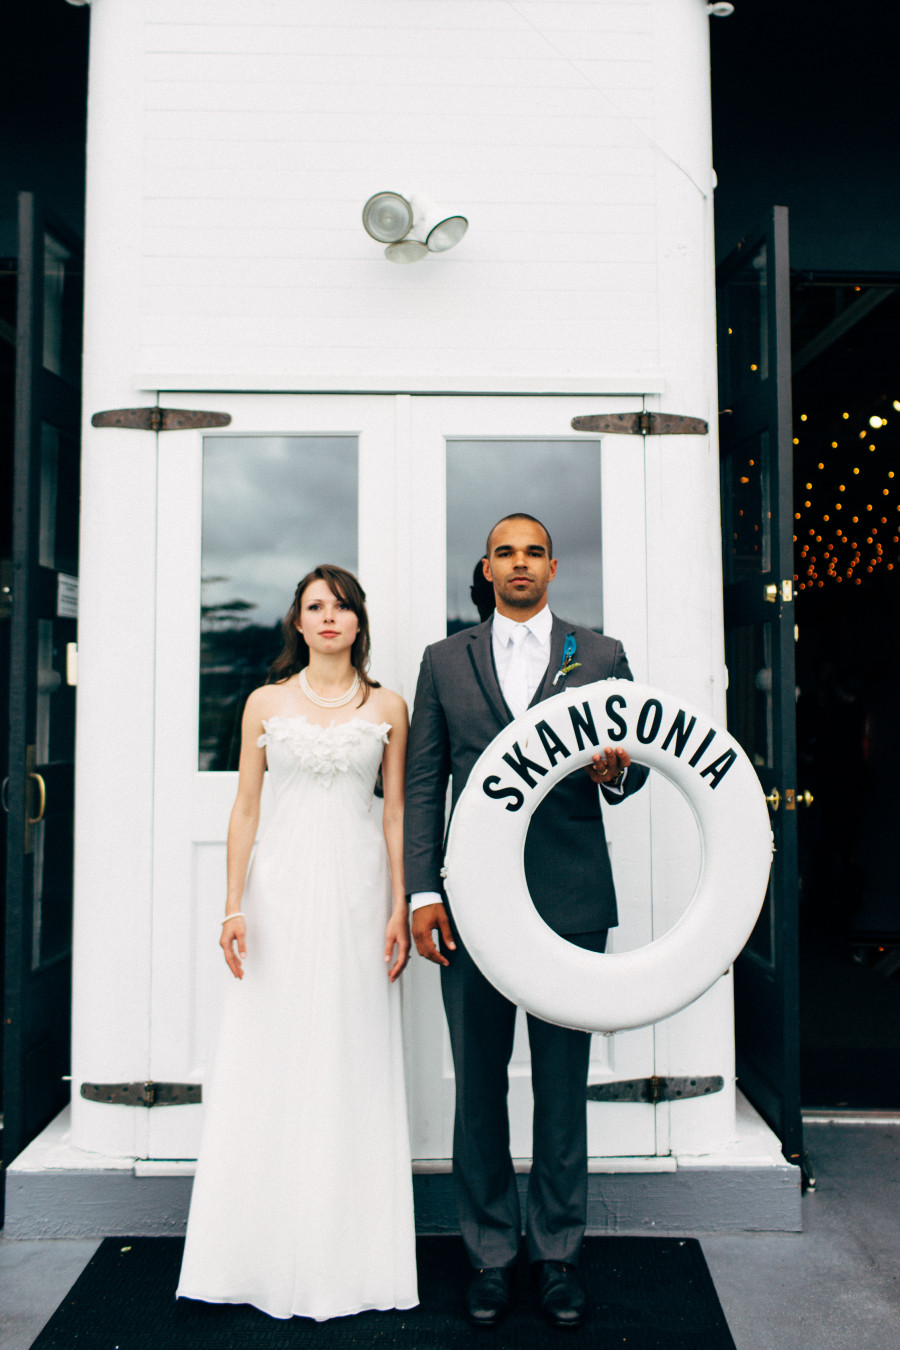 skansonia ferry wedding photography lake union seattle sparkfly-002